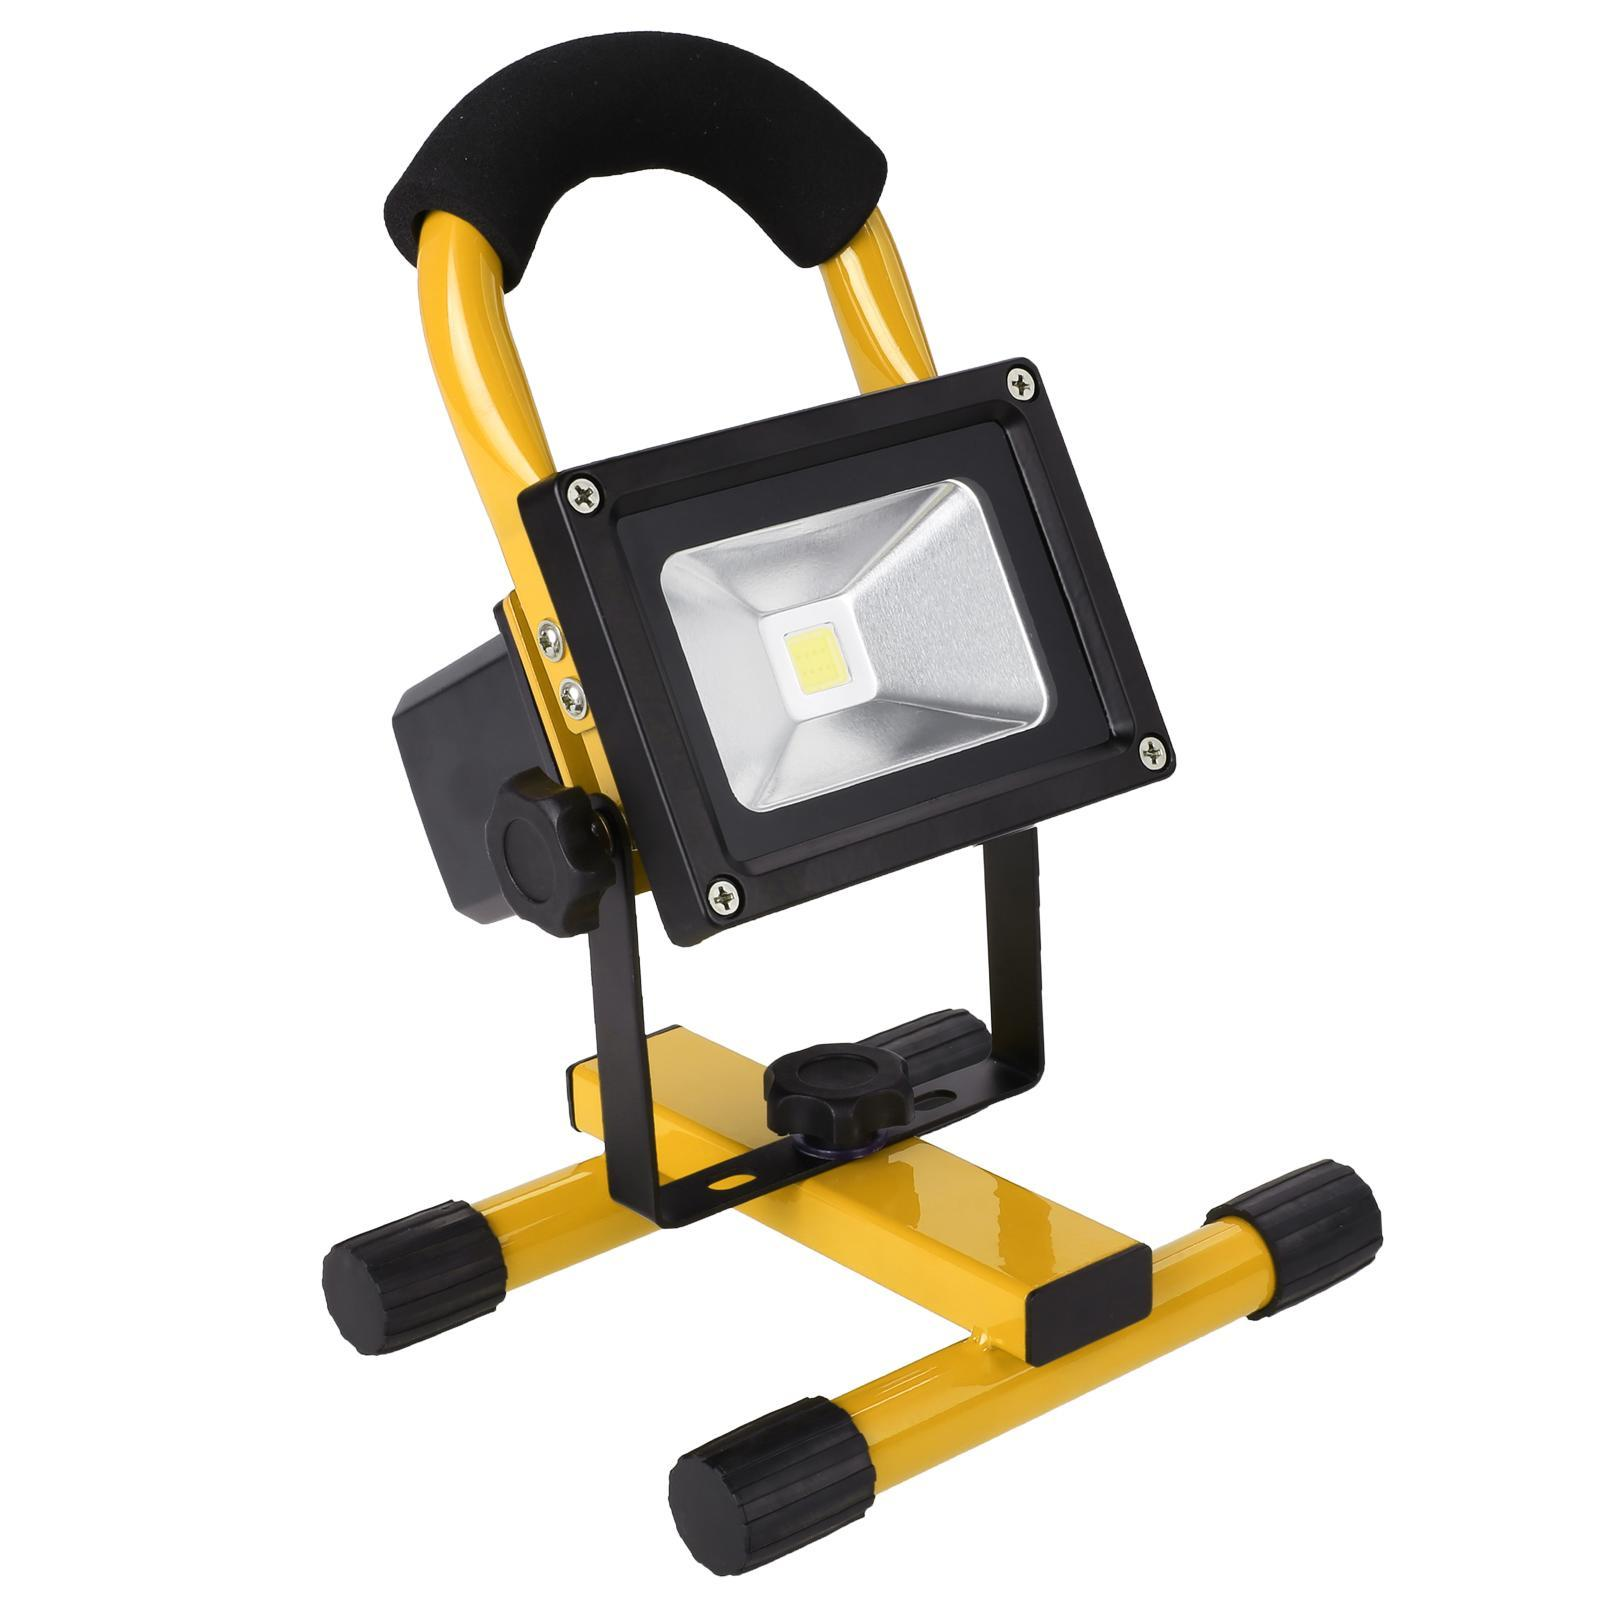 Big Clearance 10W Wireless Rechargeable LED Flood Light Outdoor Camping Hiking Lamp US Plugg GOGBY